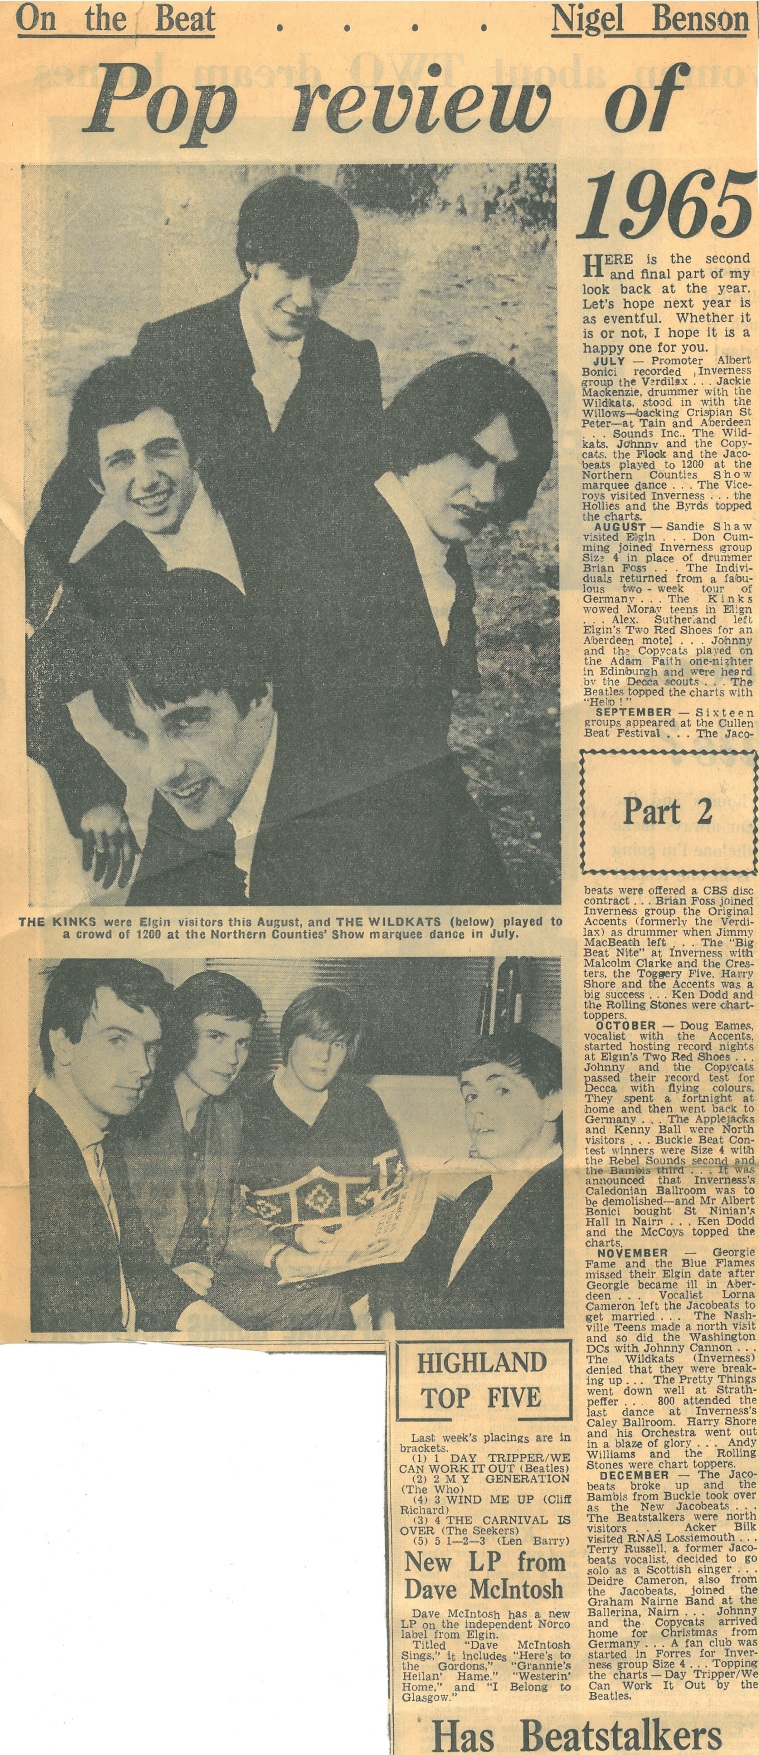 1965 review